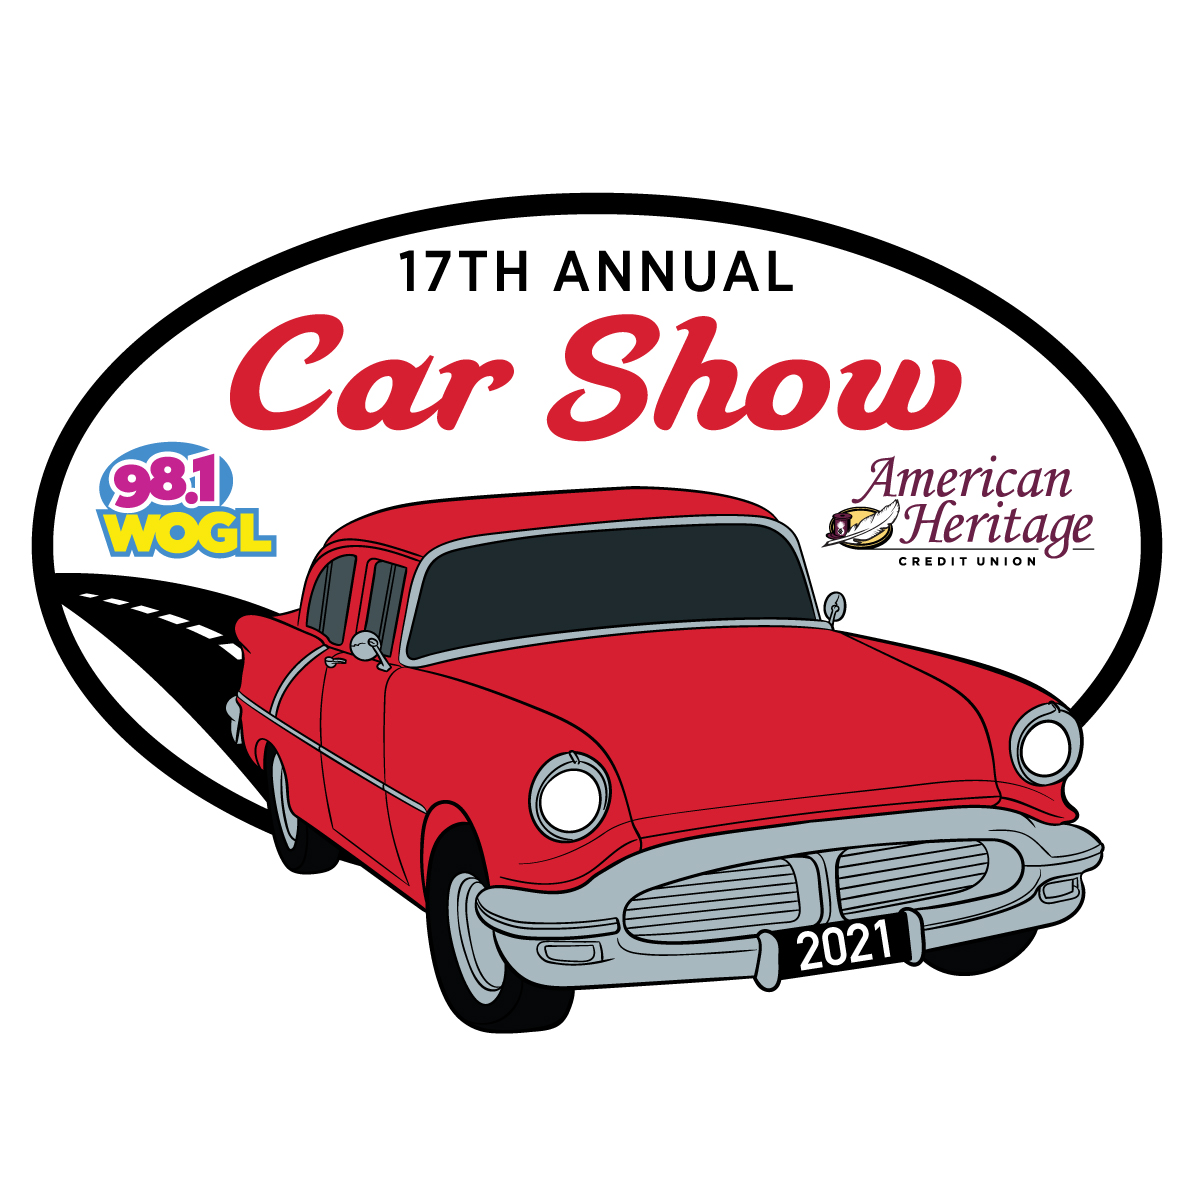 Image of Car with car show information